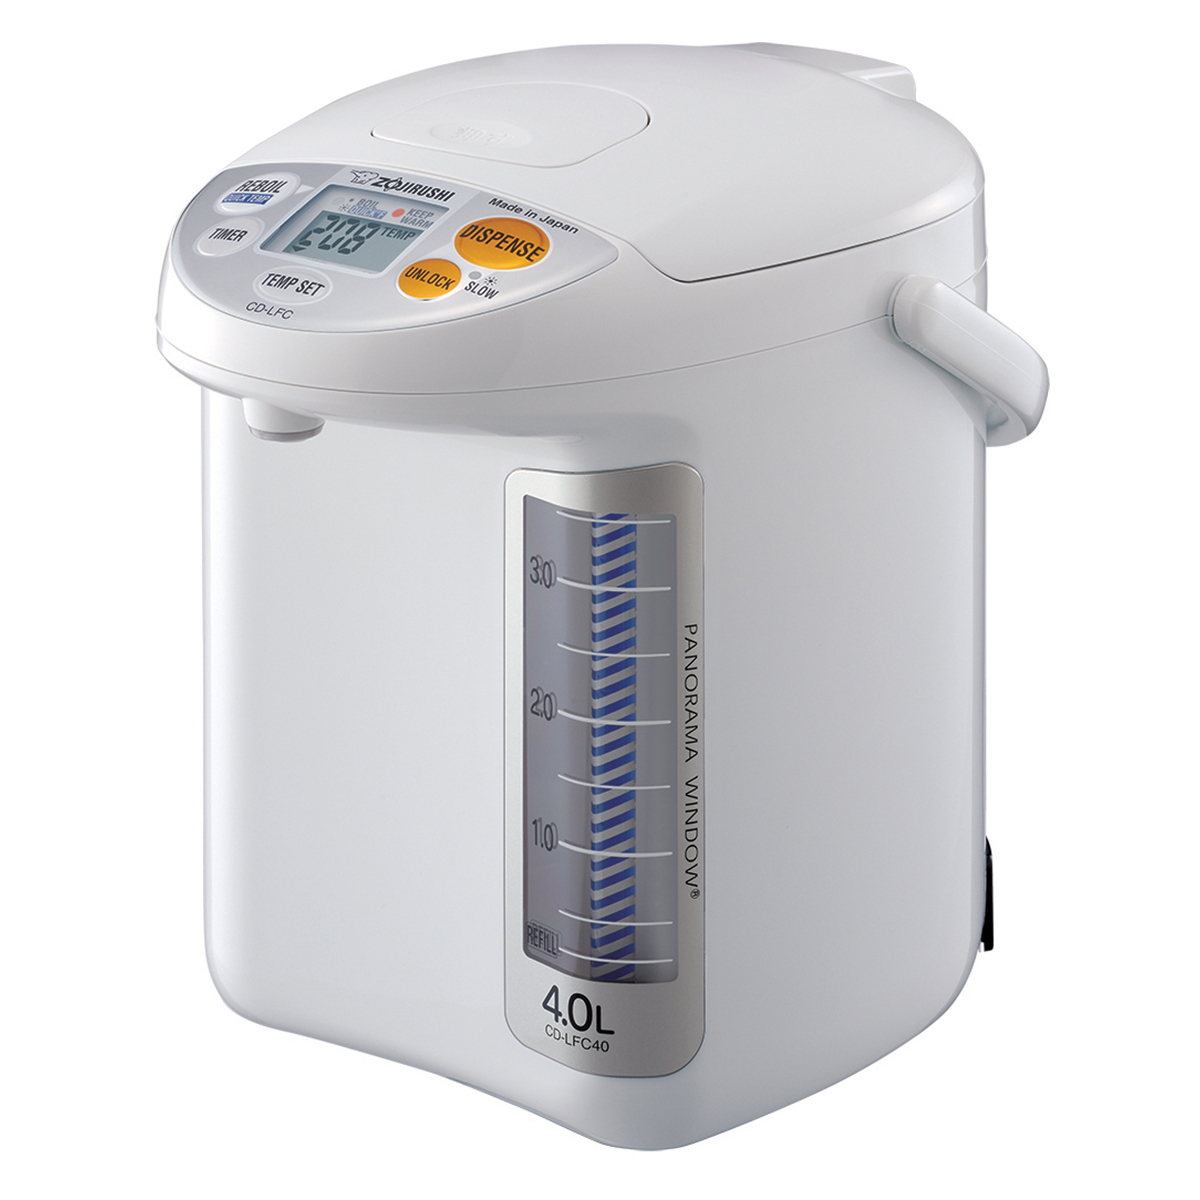 Zojirushi Micom Panorama White 135 Ounce Water Boiler and Warmer